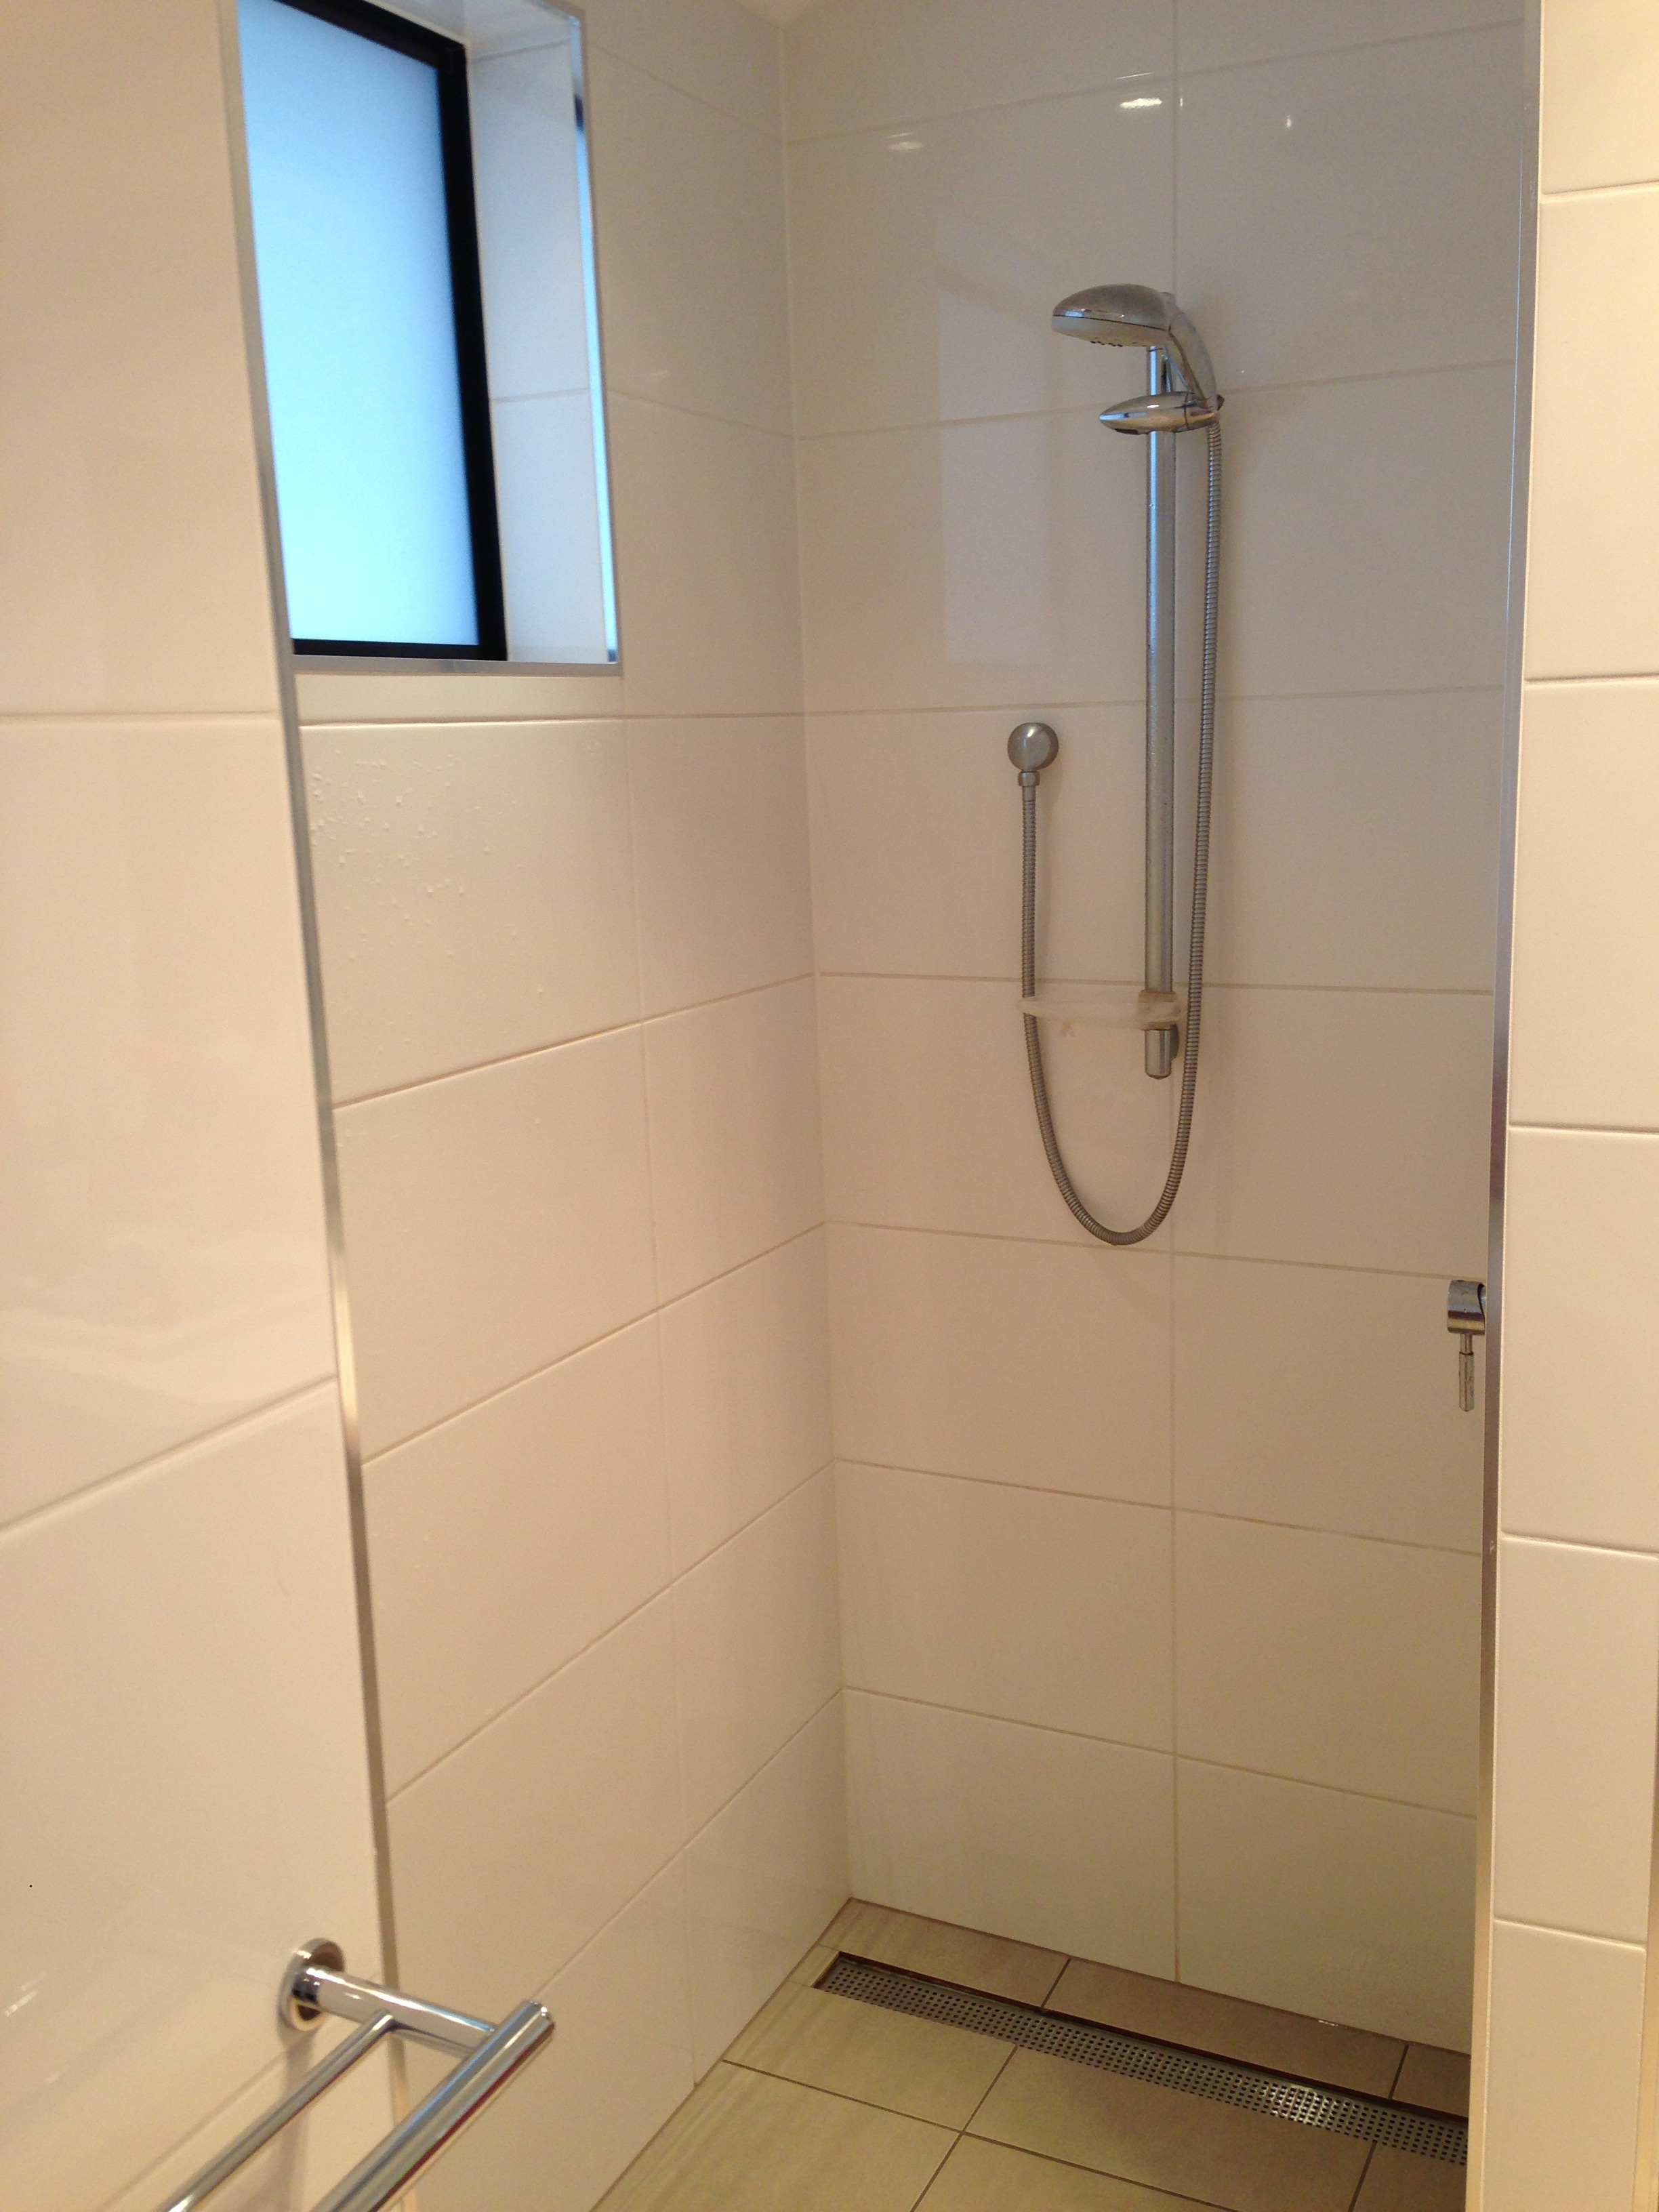 Cpr Plumbing Solutions Gallery Melbourne Eastern Suburbs Plumbercpr Plumbing Solutions